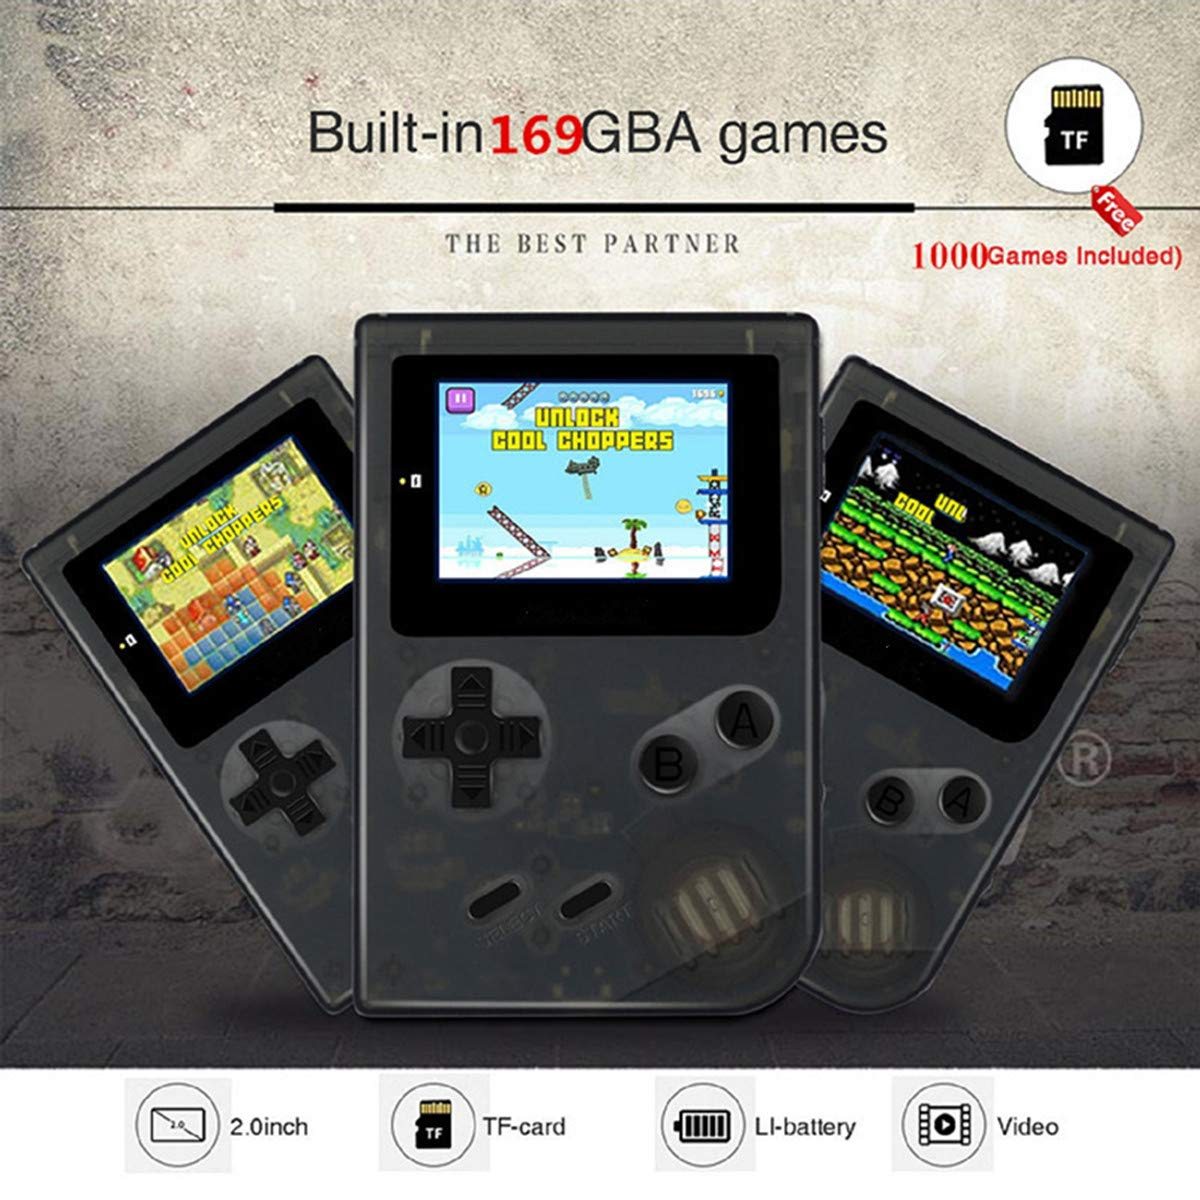 BAORUITENG Handheld Games Consoles , Retro TV Game Console Video Game Console Player 2.0 Inch Game Console with 1169 GBA System Classic Games for Kids Gift (Black) by BAORUITENG (Image #5)